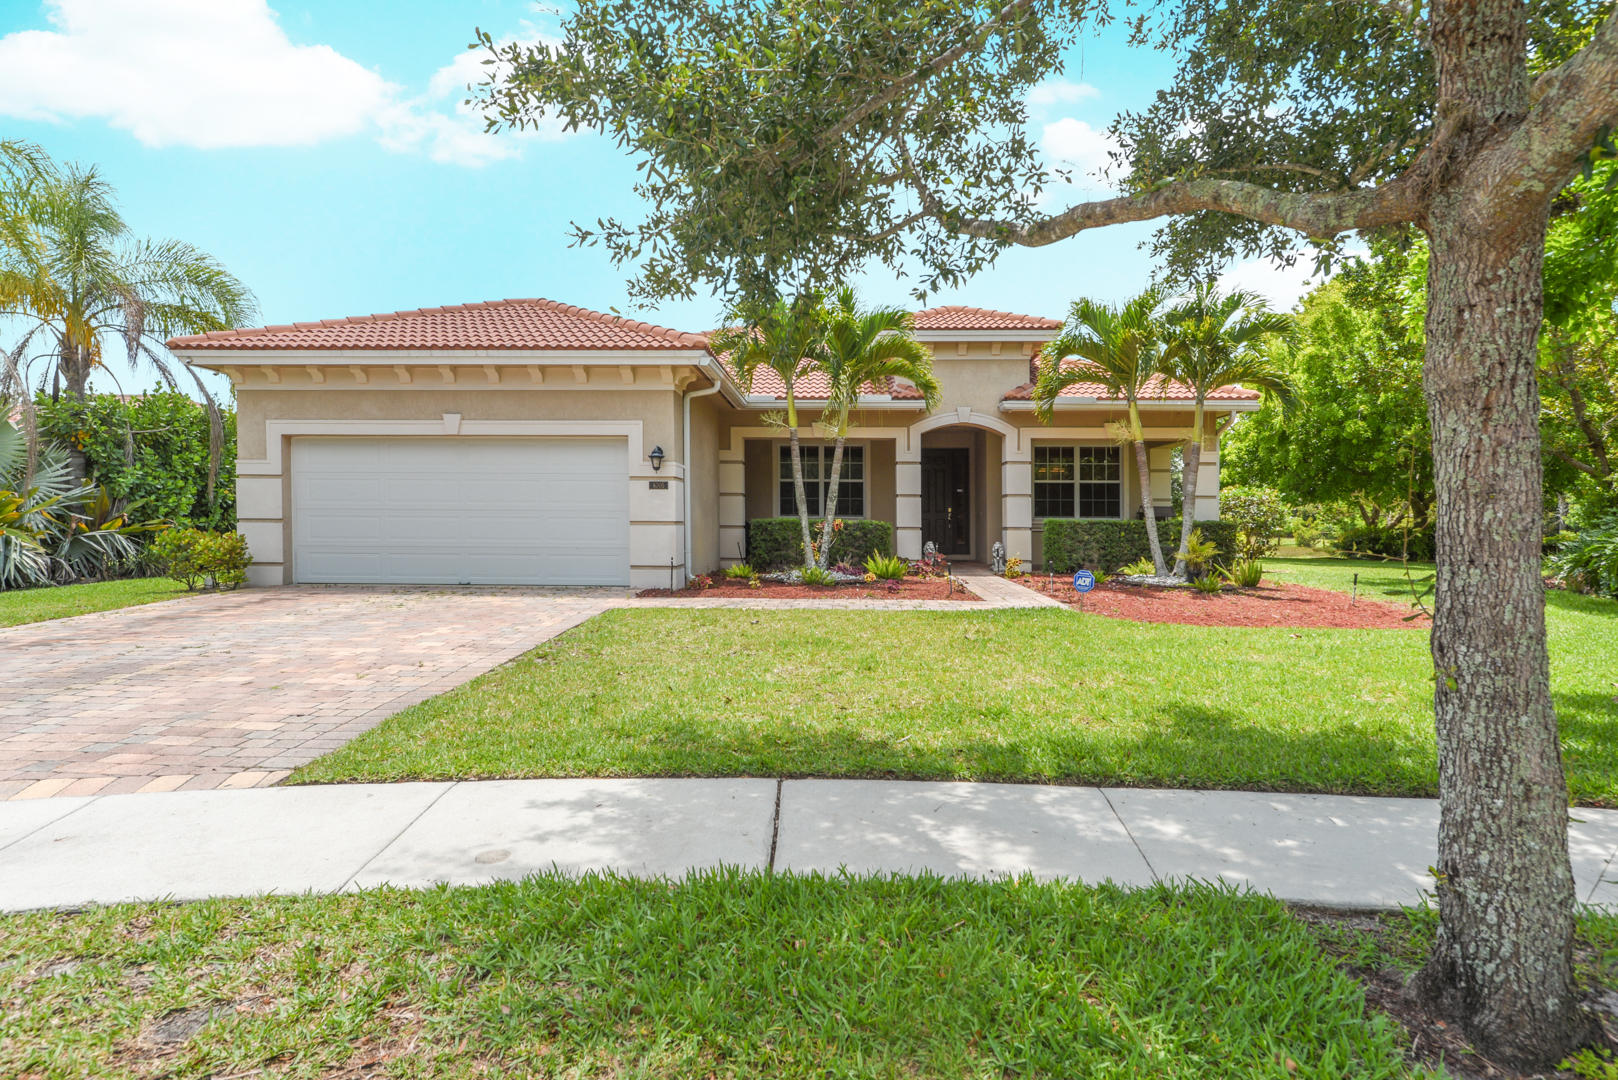 Home for sale in Sagewood Greenacres Florida